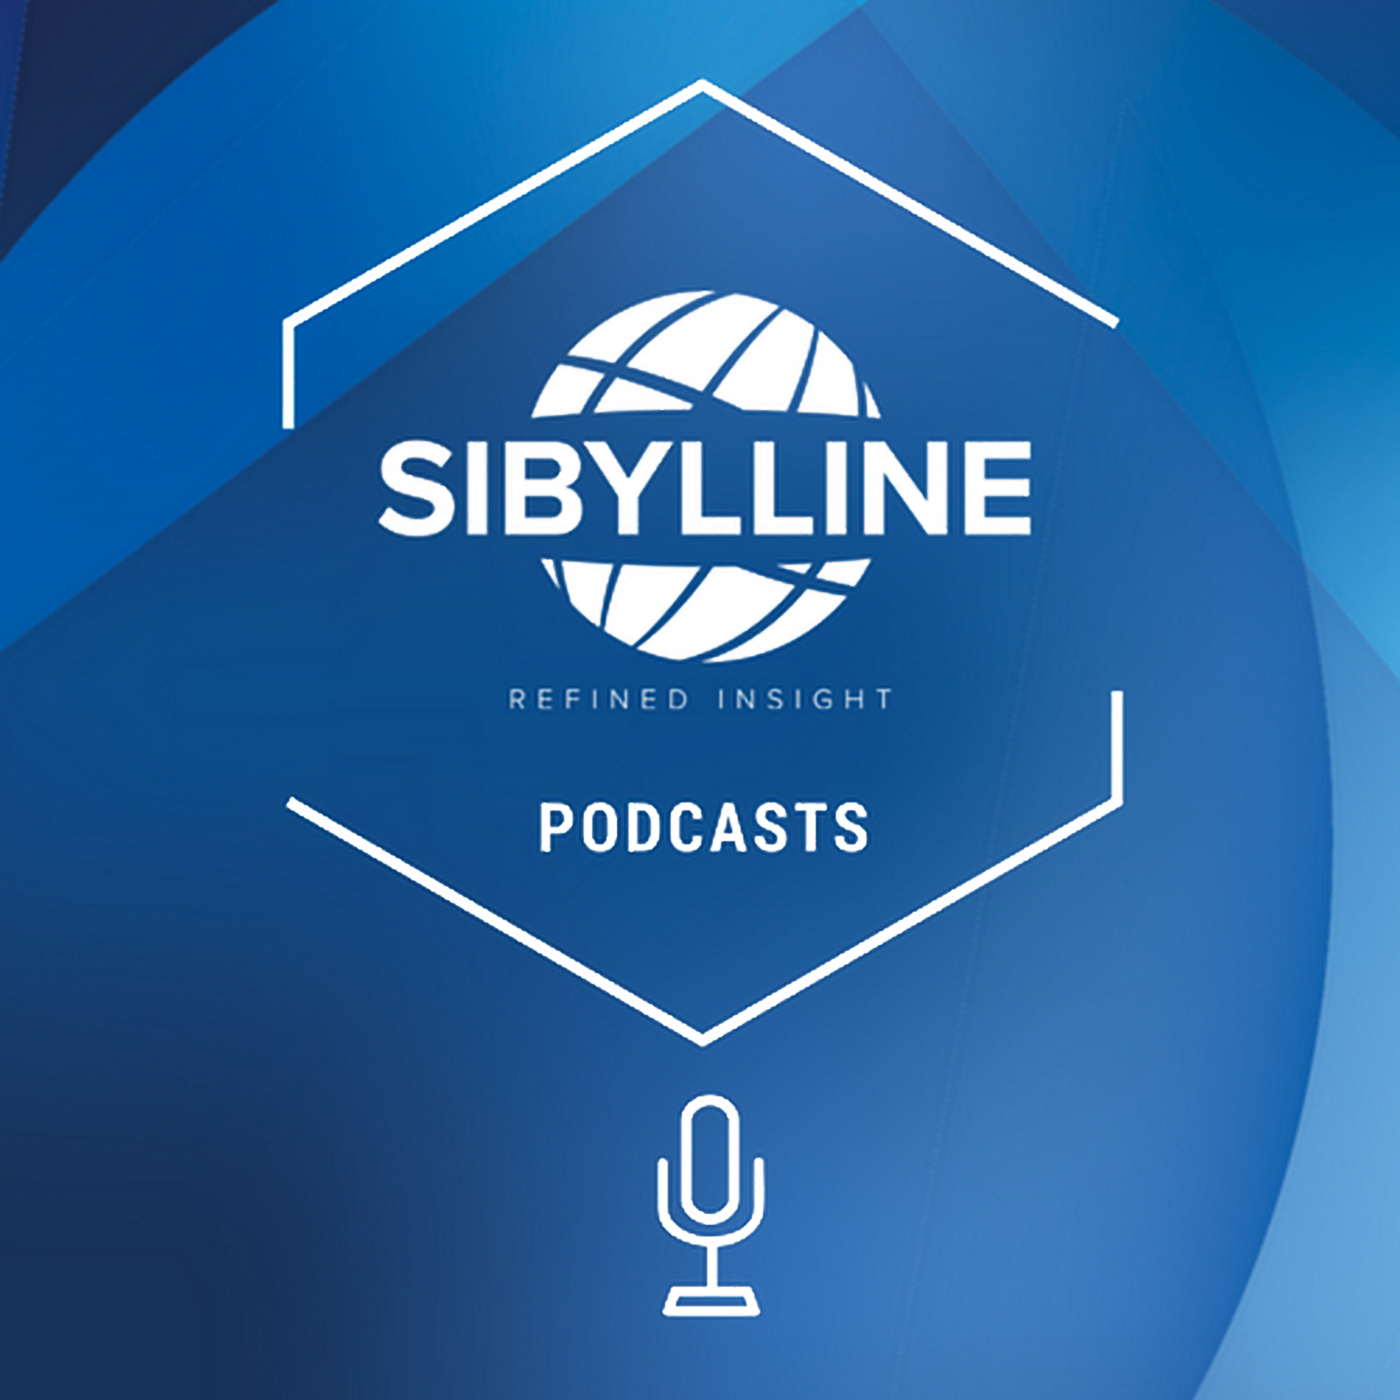 Sibylline Podcast – Greece/Macedonia – Political Uncertainty and Risks of Unrest Likely to Endure in the Long Term